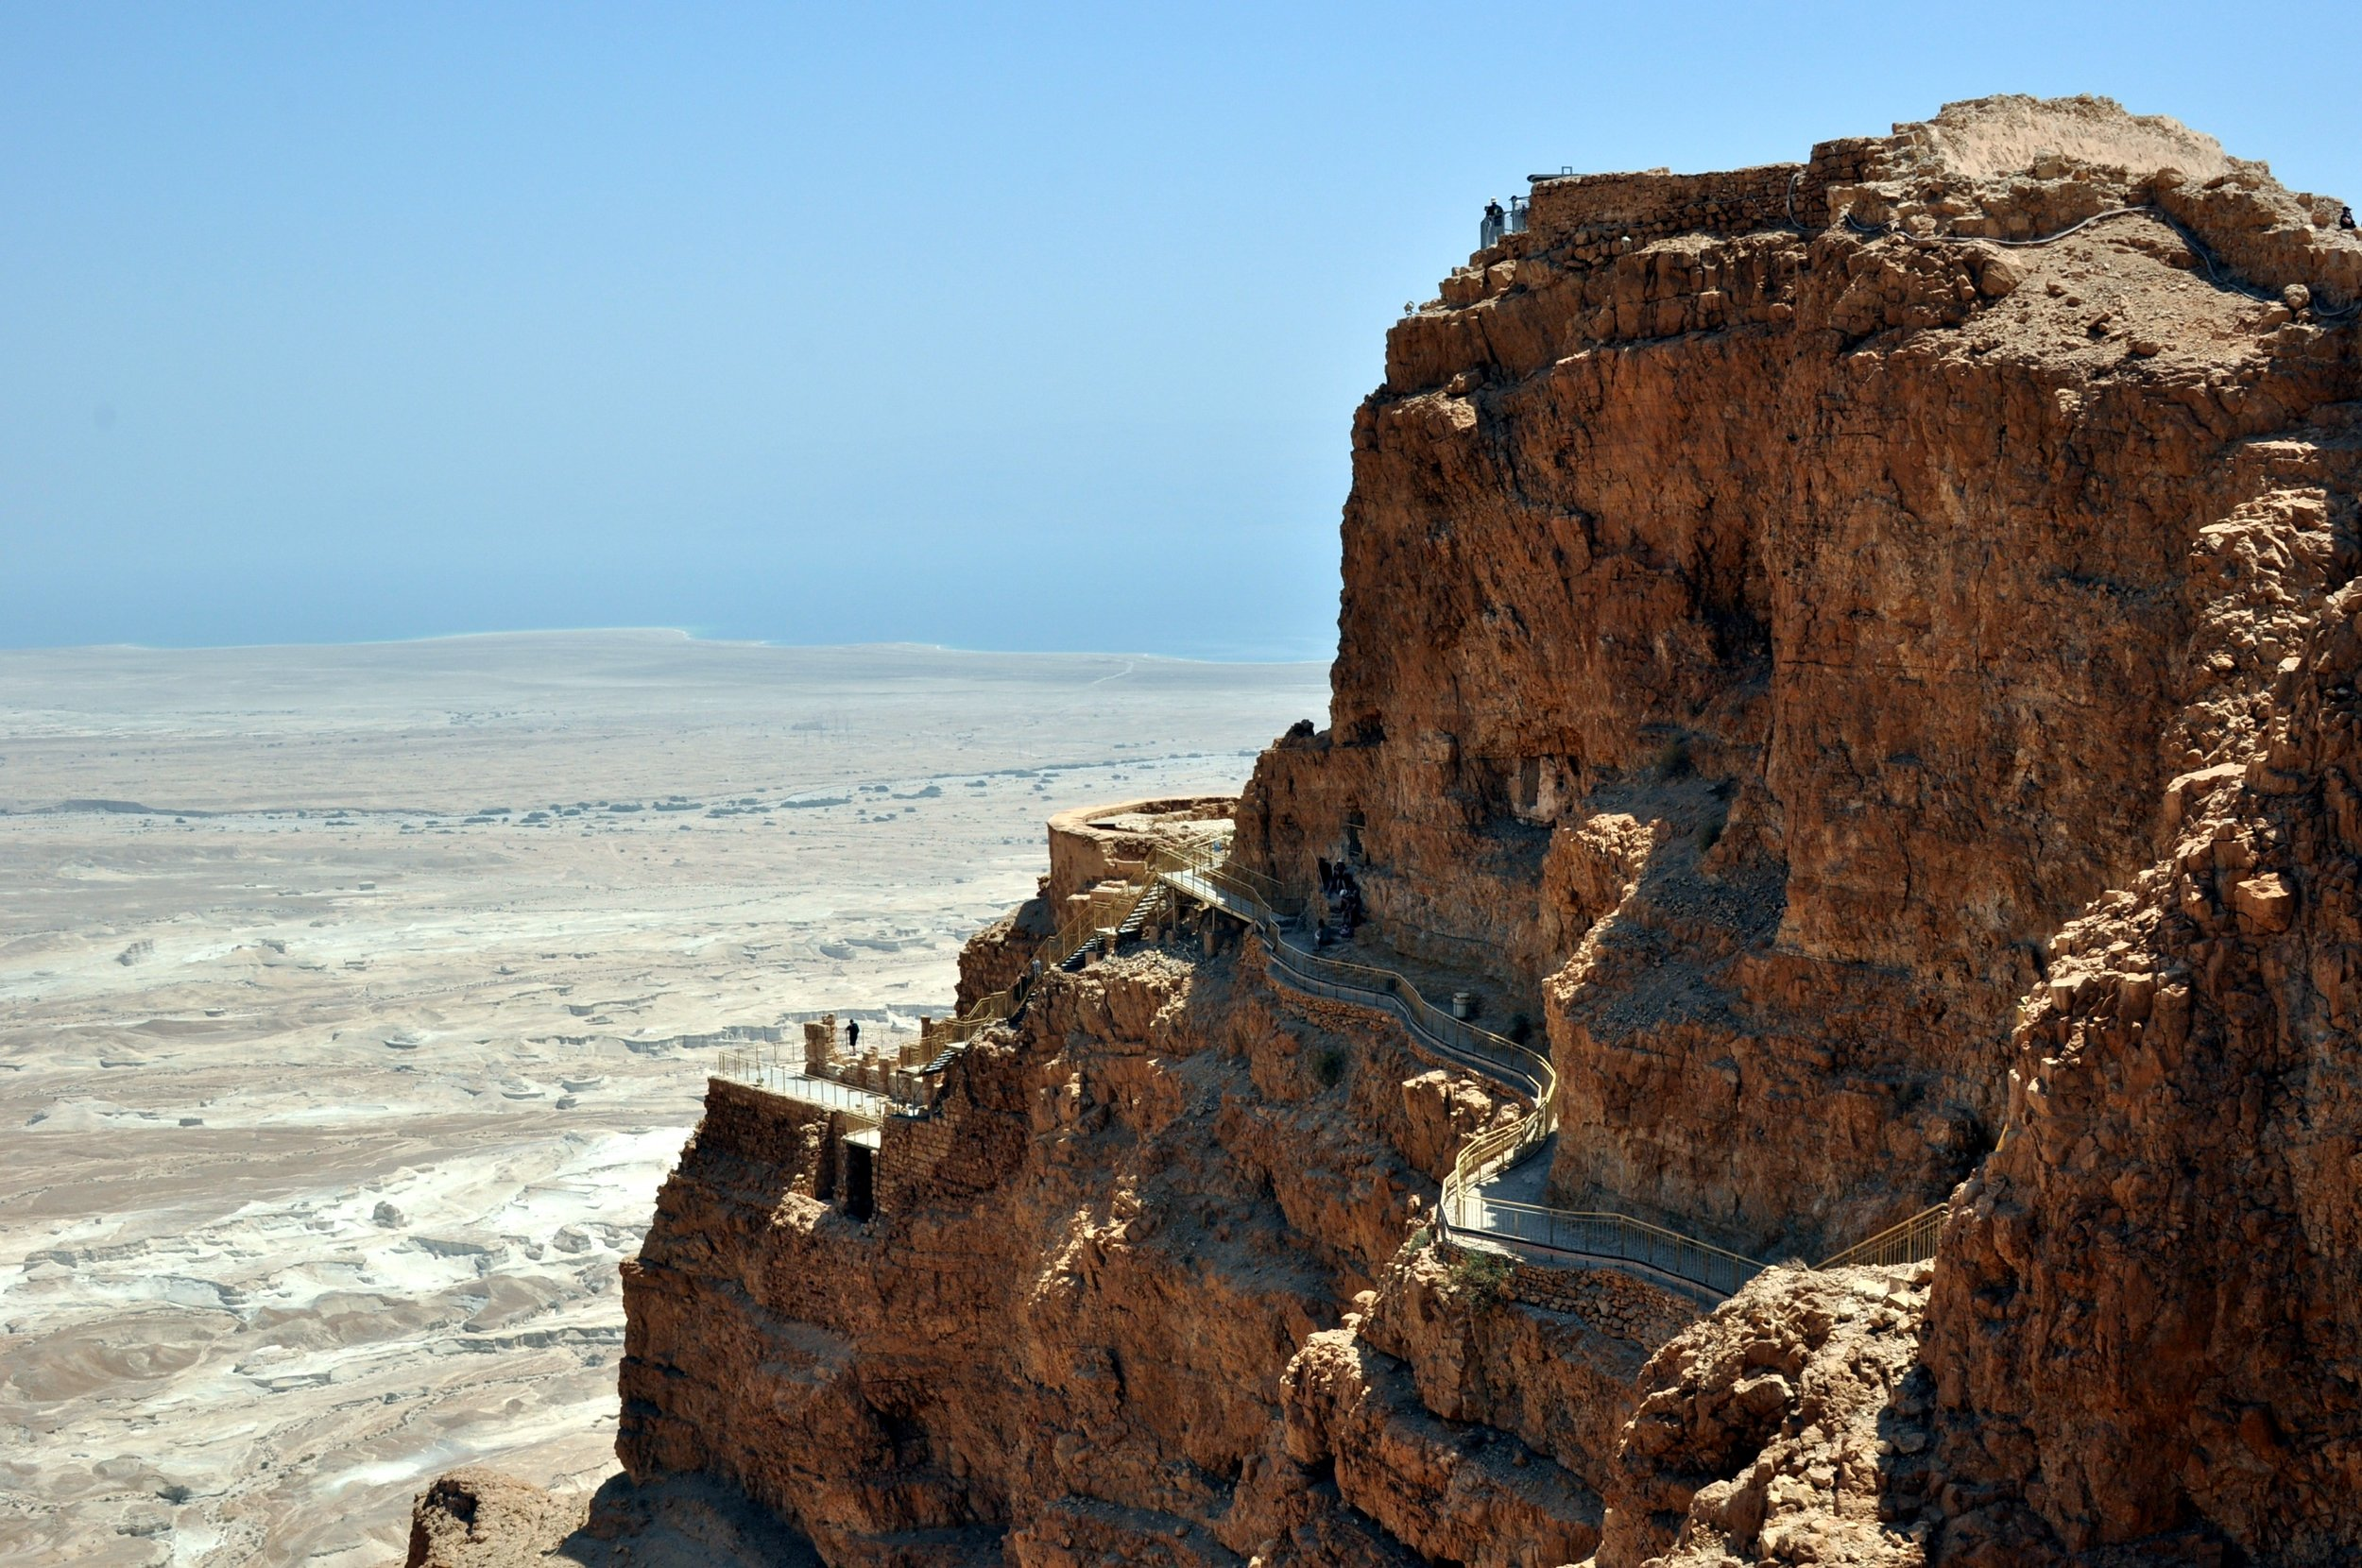 The three rock terraces of the Northern Palace, Masada. The Dead Sea is in the background.